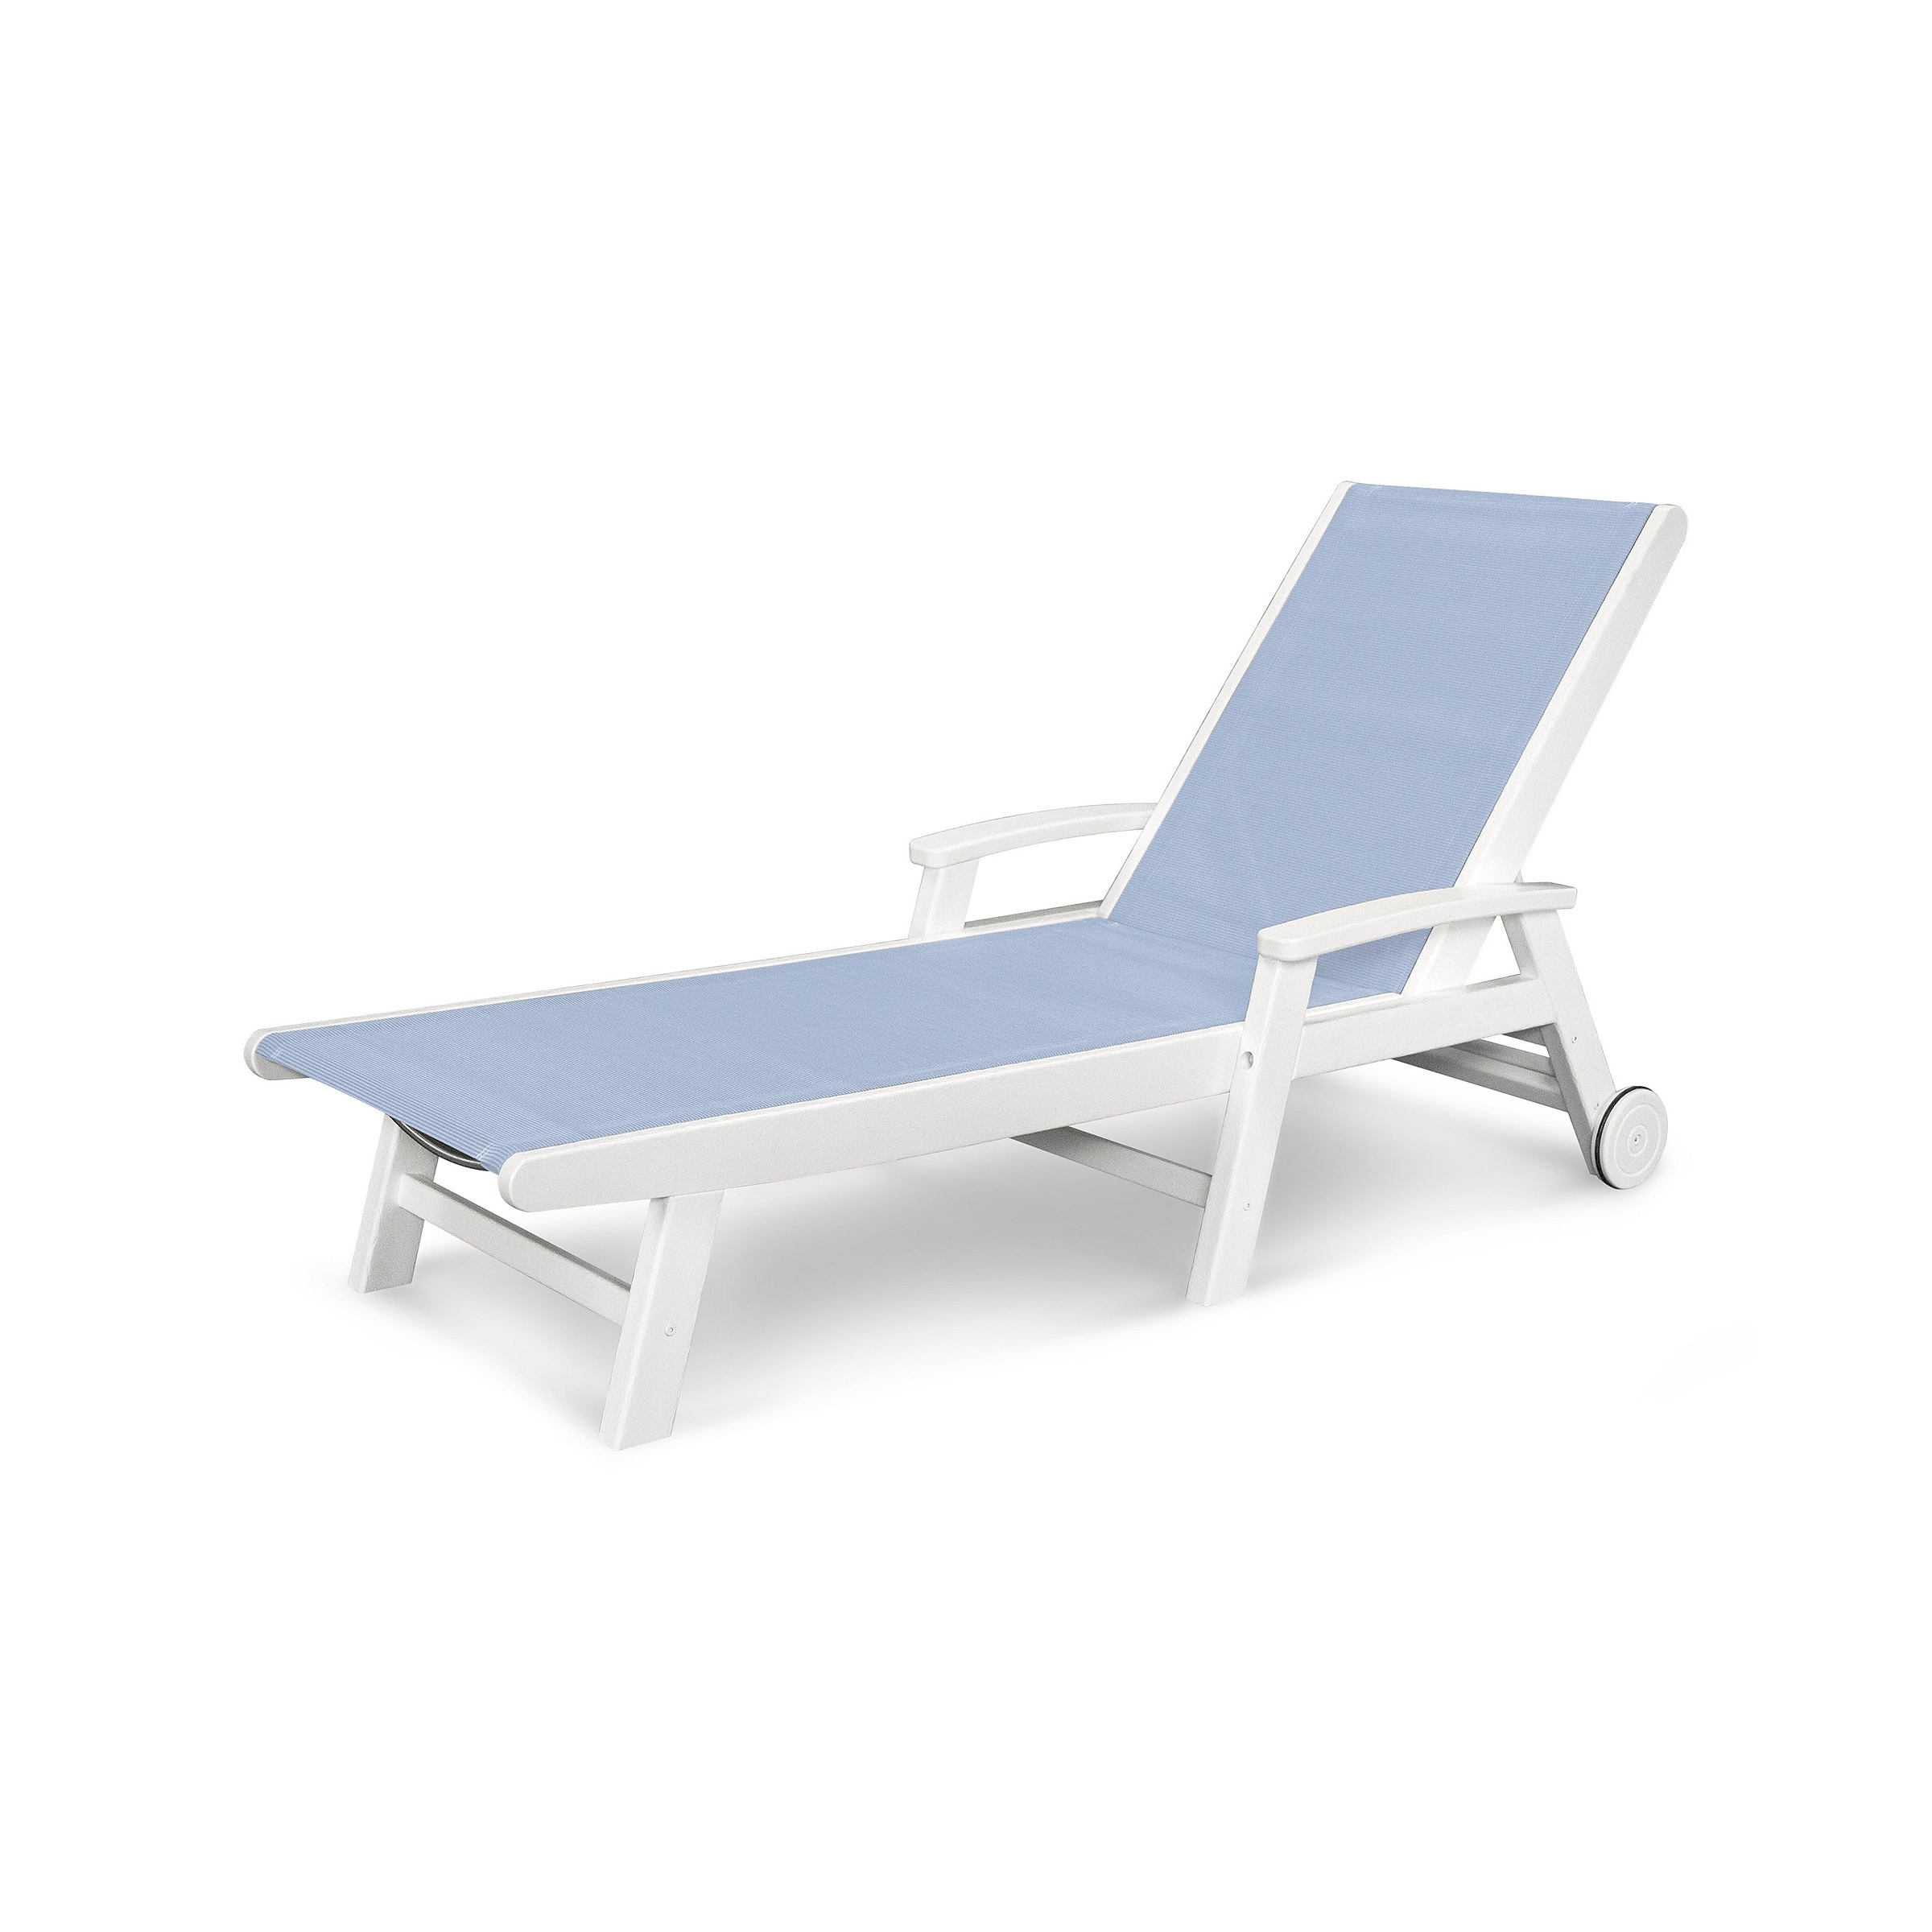 Outdoor Chaise Lounges (View 5 of 15)